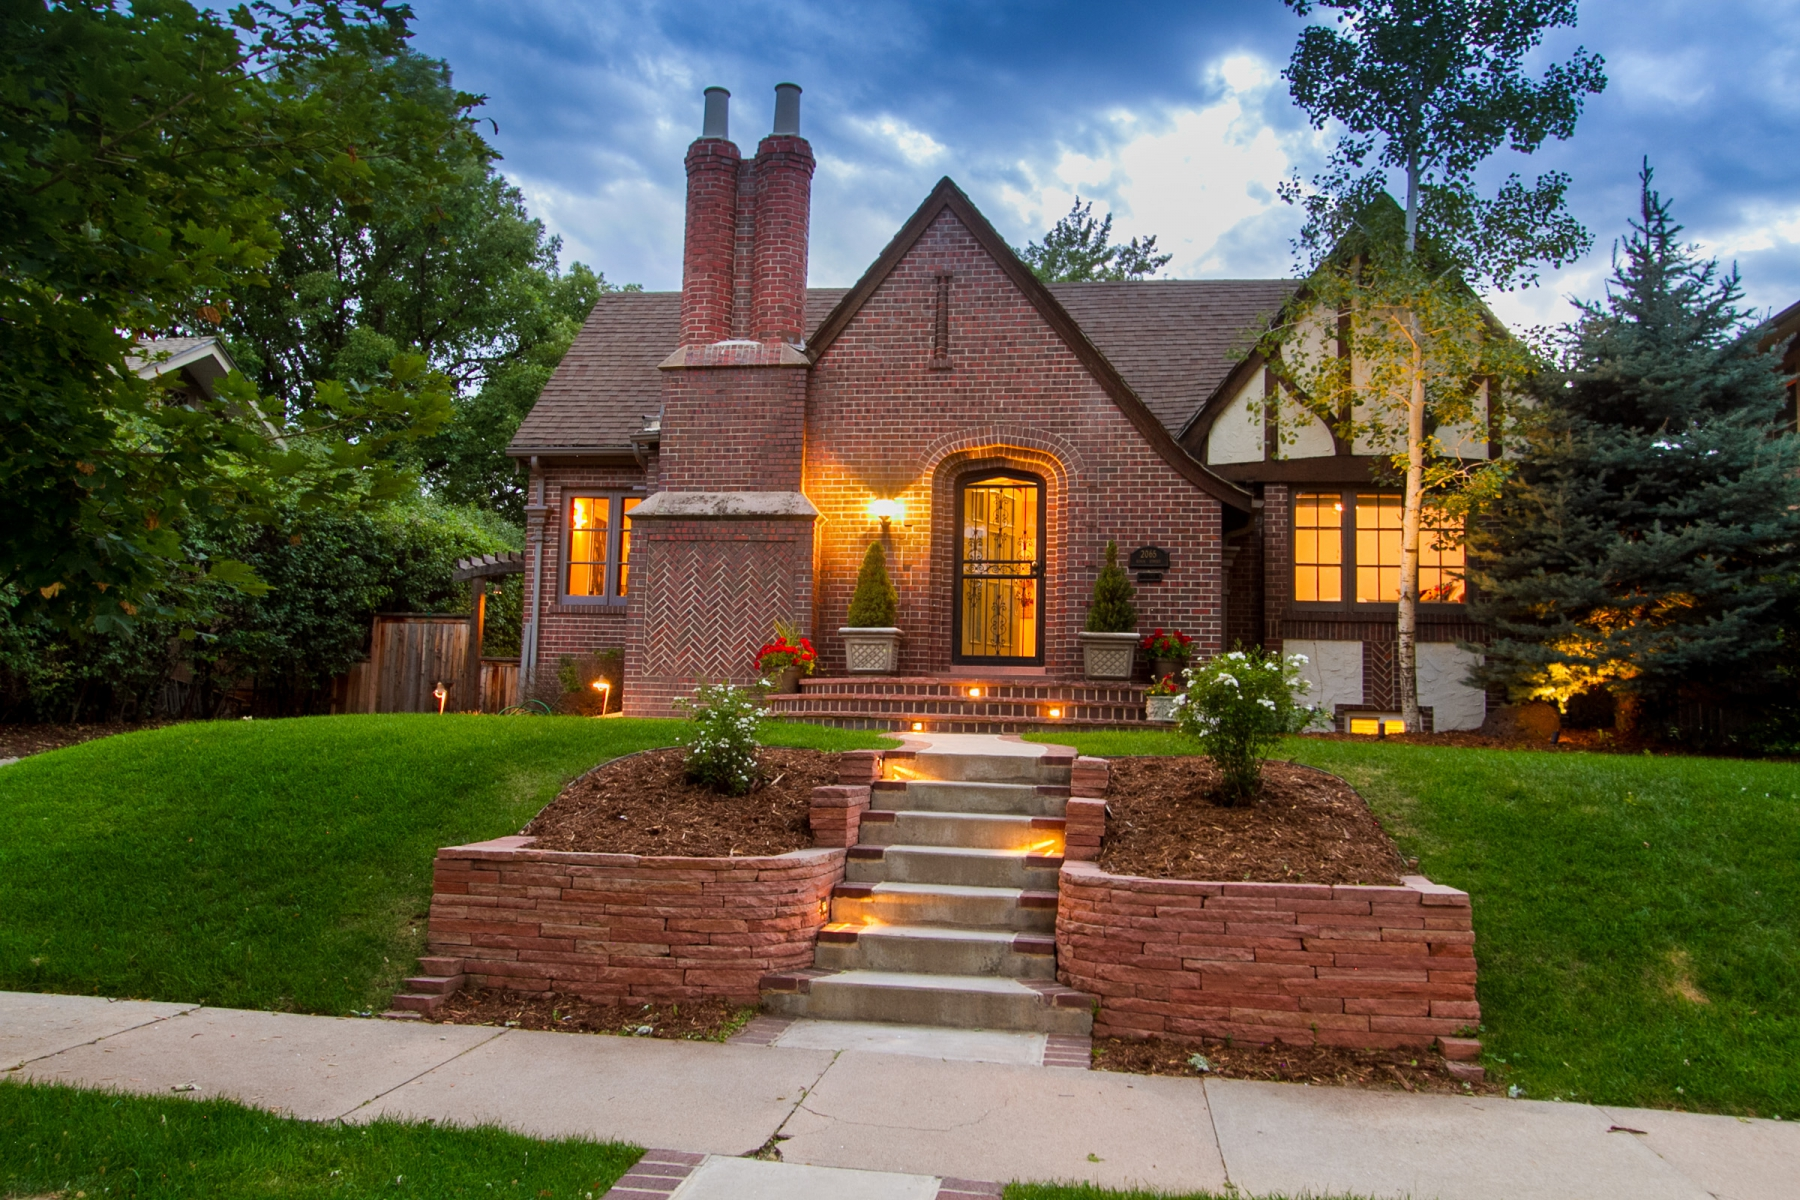 Single Family Home for Sale at Picturesque one-story Tudor in Park Hill 2065 Birch Street Denver, Colorado 80207 United States